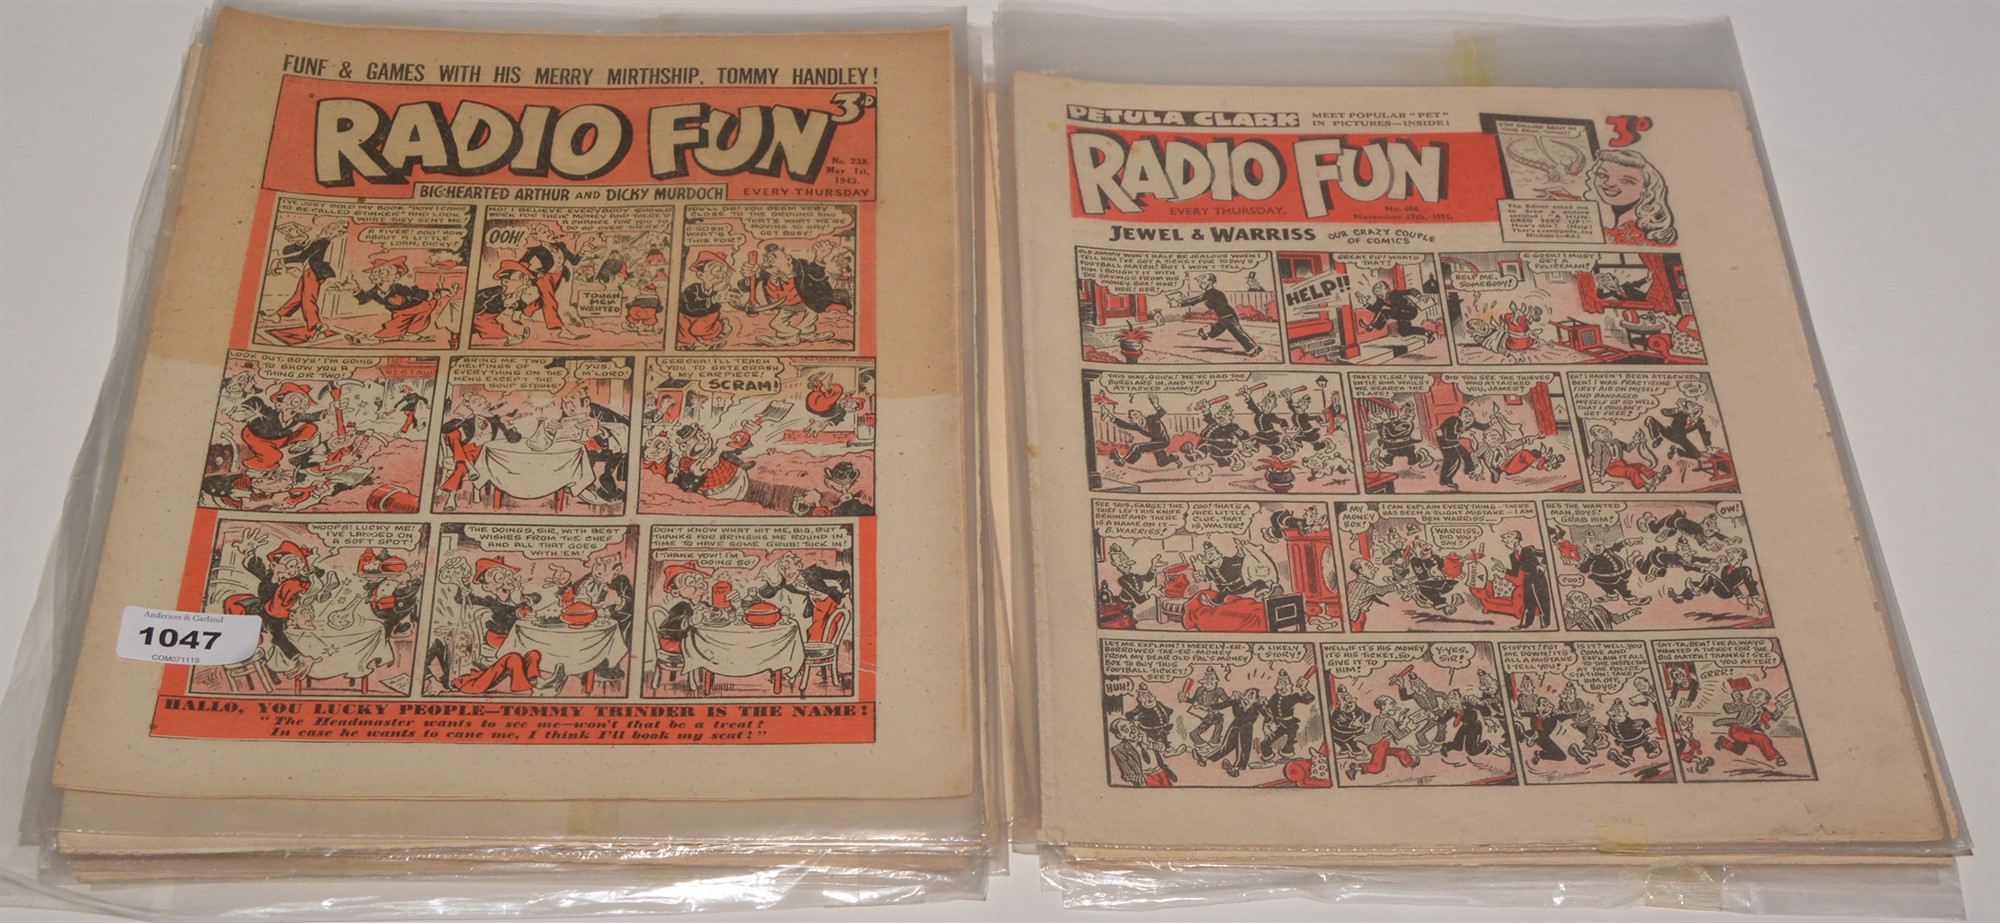 Film Fun sundry issues from the period 1943-59. (37) and Radio Fun sundry issues from the period - Image 2 of 2